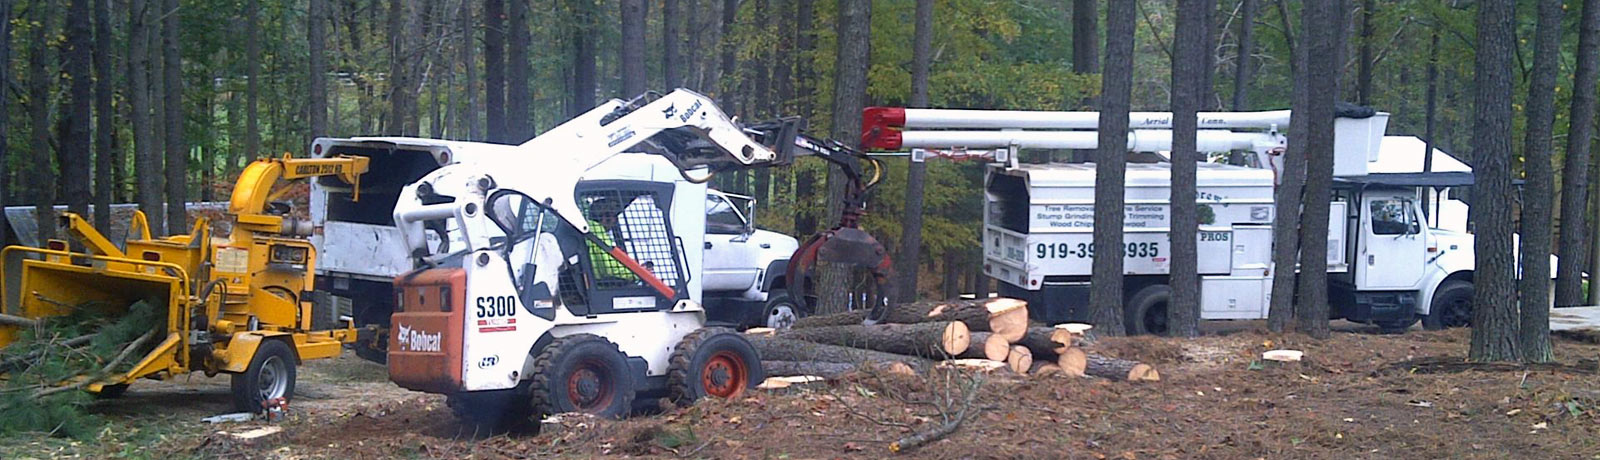 Tree Trimming & Pruning, Tree Cutting & Removal, Stump Grinding & Removal Services.